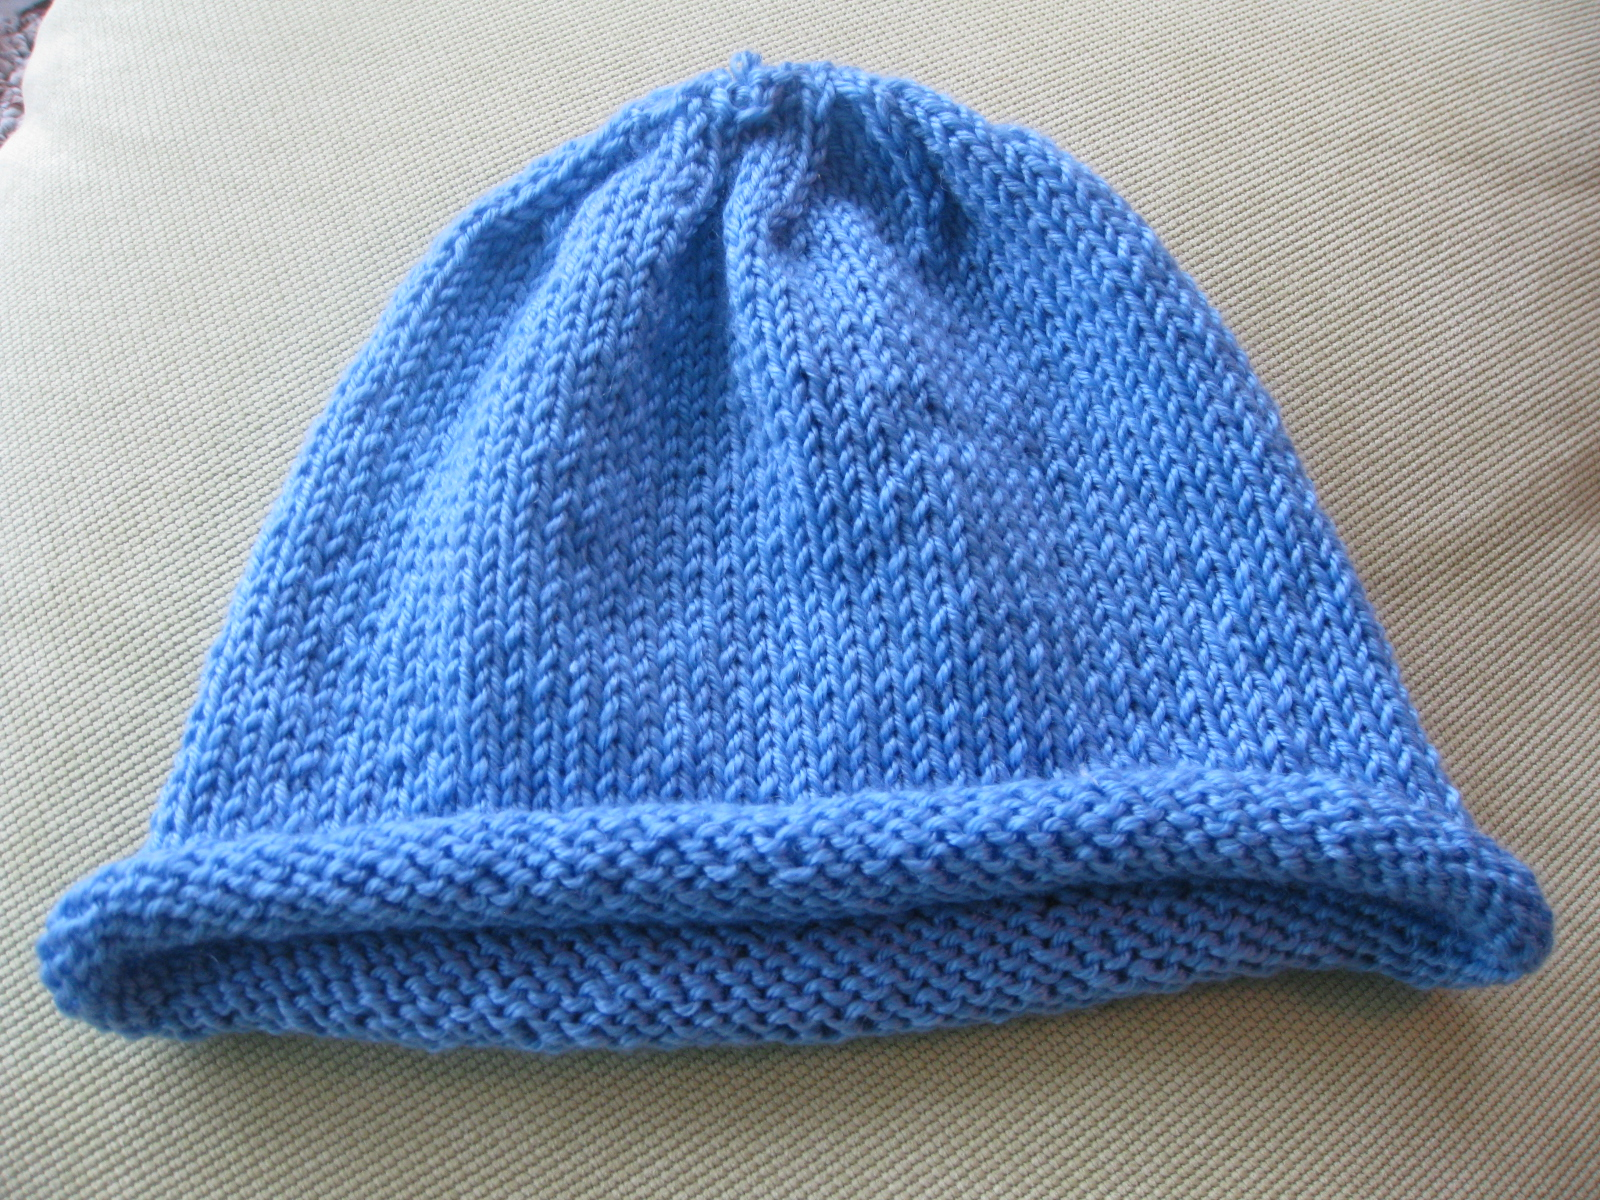 Knitting Patterns For Hats Using Circular Needles : Pieced Brain: Knitted Hat